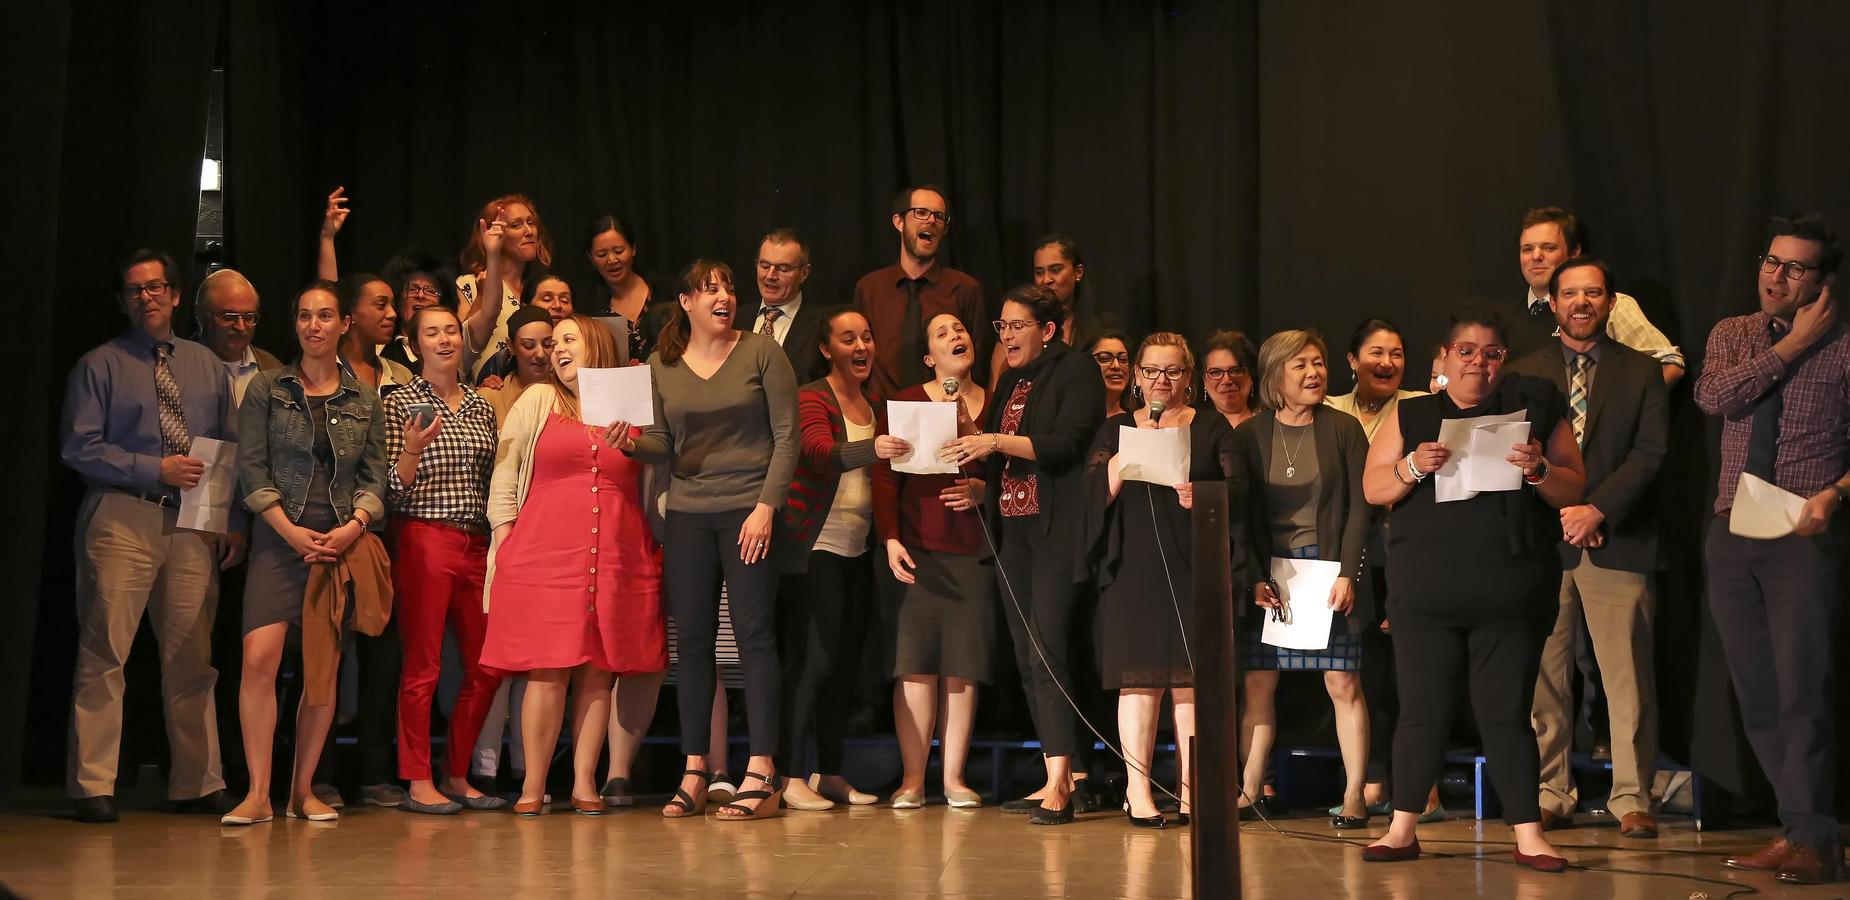 Faculty/Staff singing the closing song at Junior/Senior Farewell